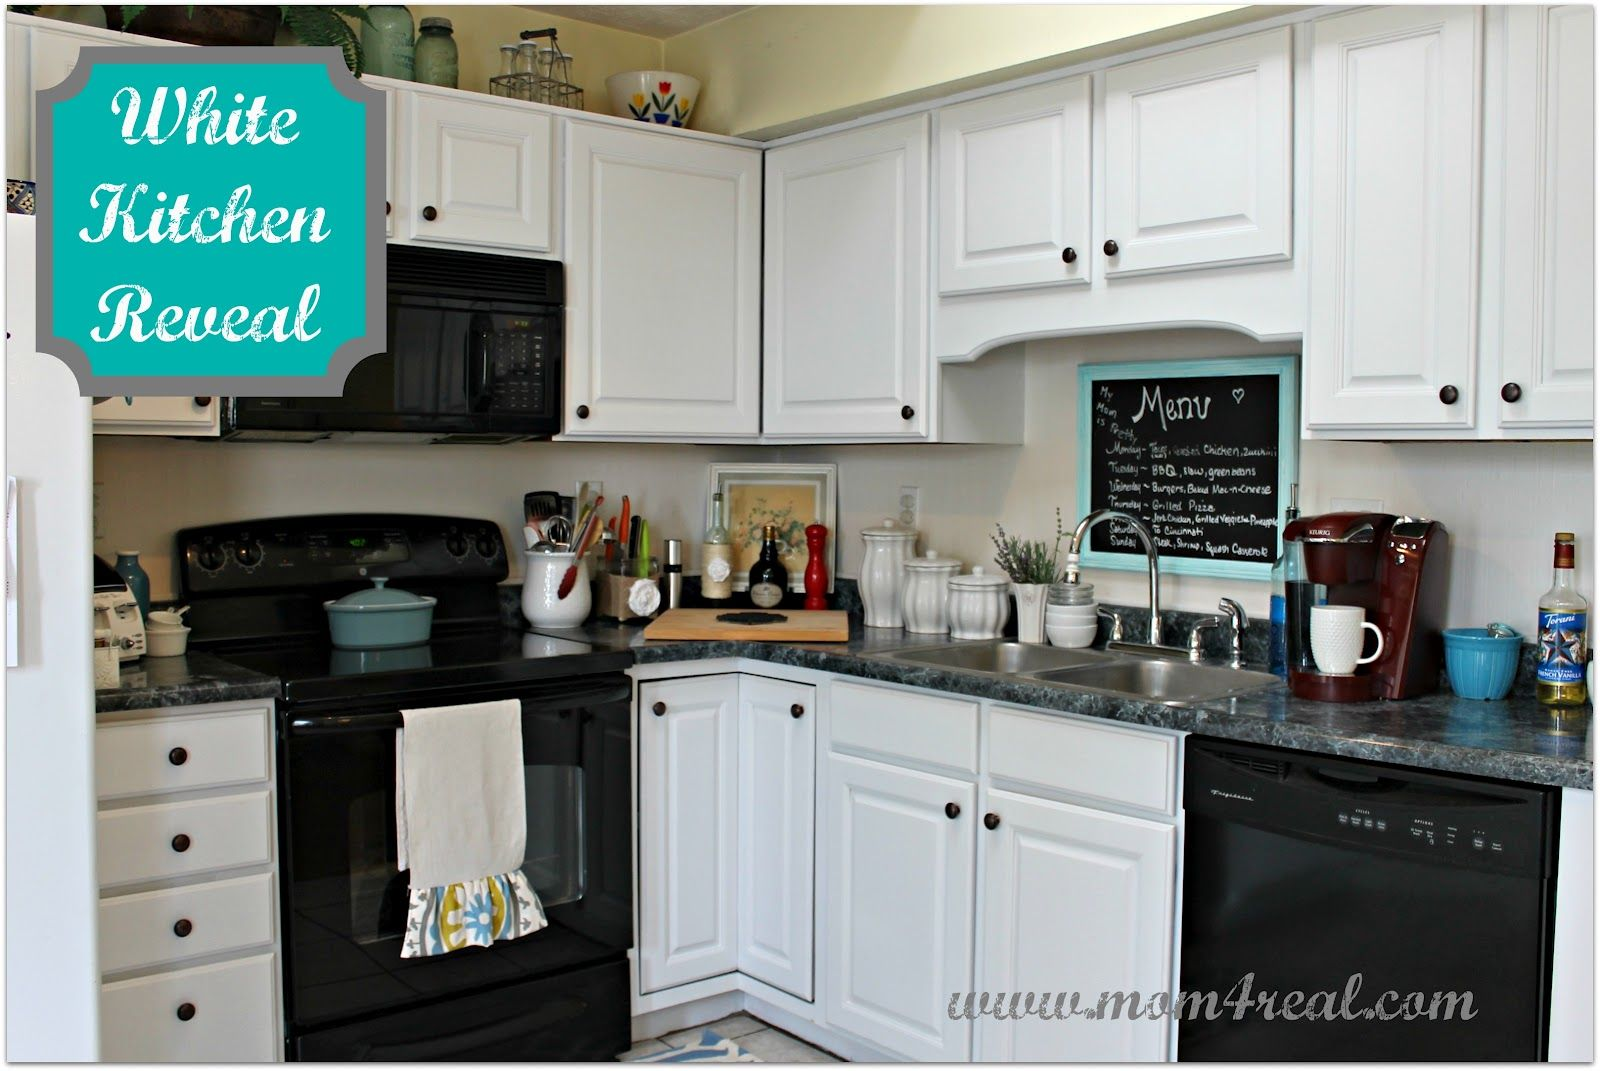 White Kitchen Reveal A Before After Mom 4 Real Kitchen Cabinets With Black Appliances Black Appliances Kitchen White Cabinets Black Appliances